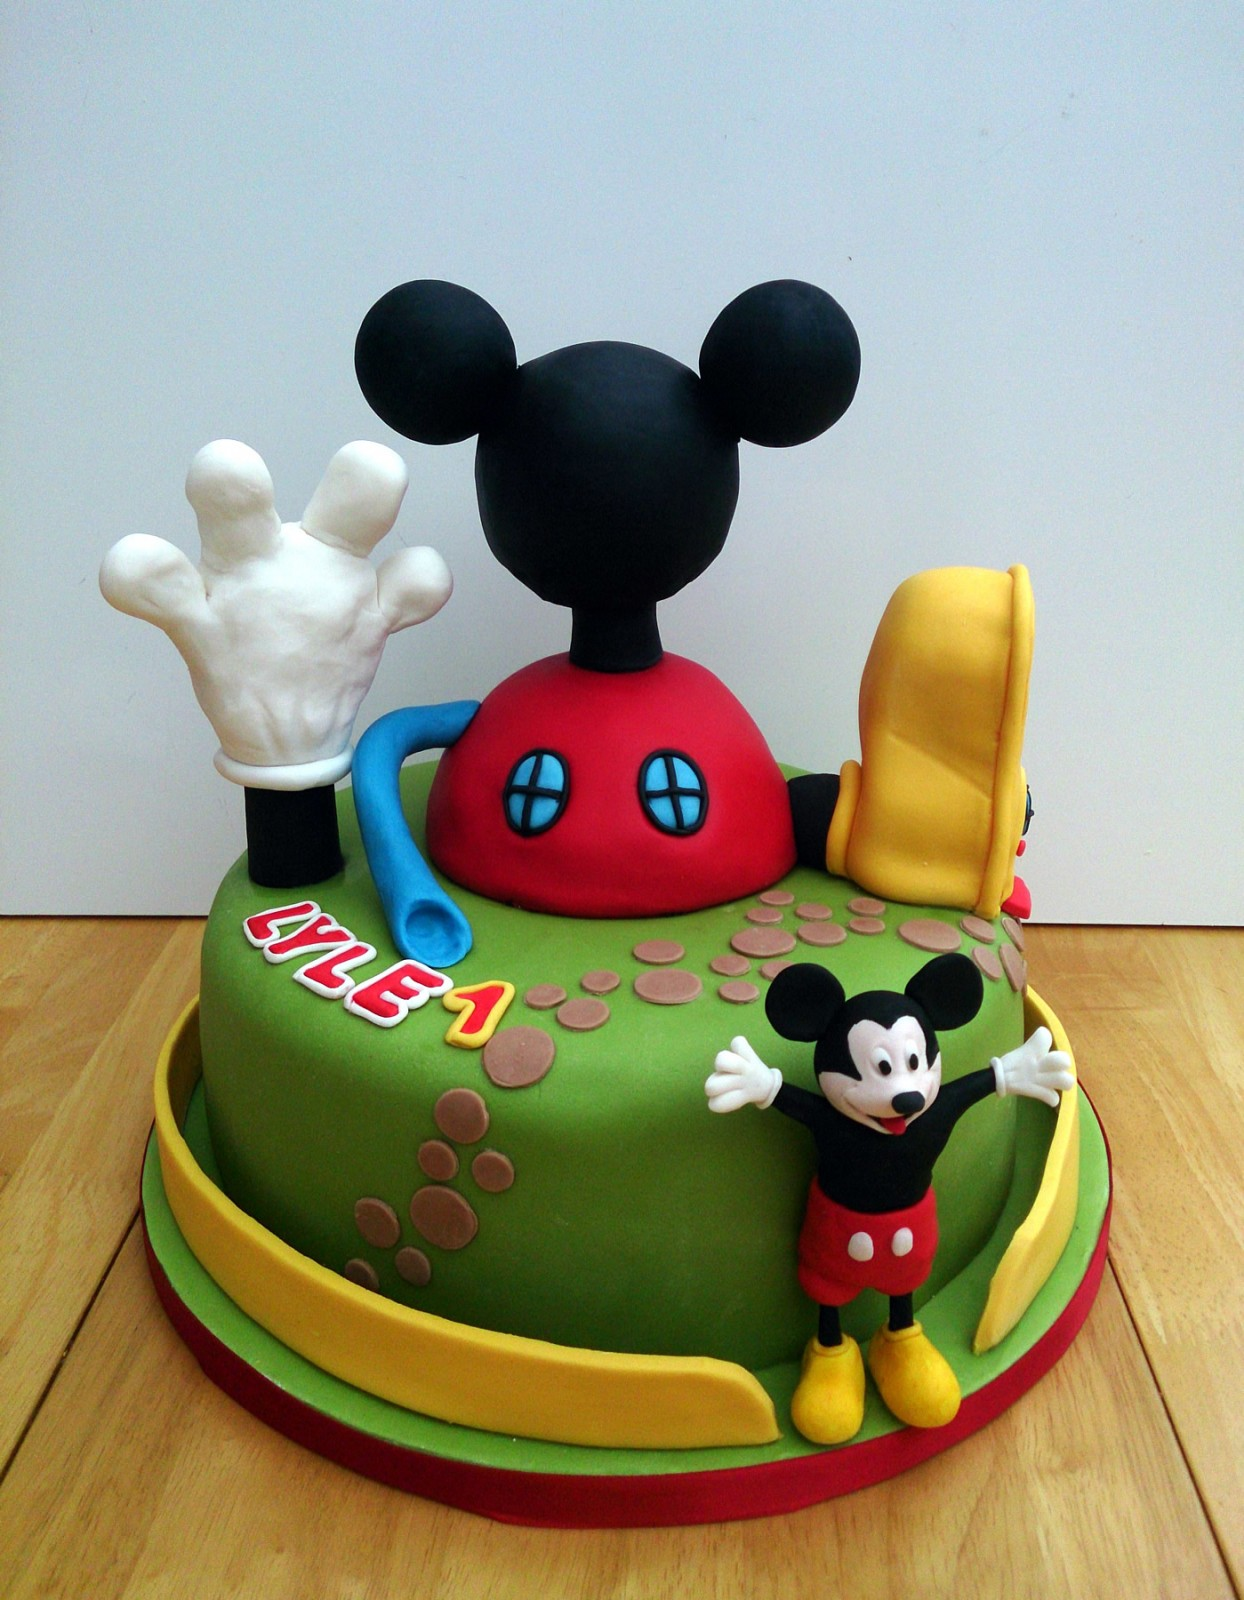 Swell Mickey Mouse Clubhouse Cake Susies Cakes Personalised Birthday Cards Veneteletsinfo